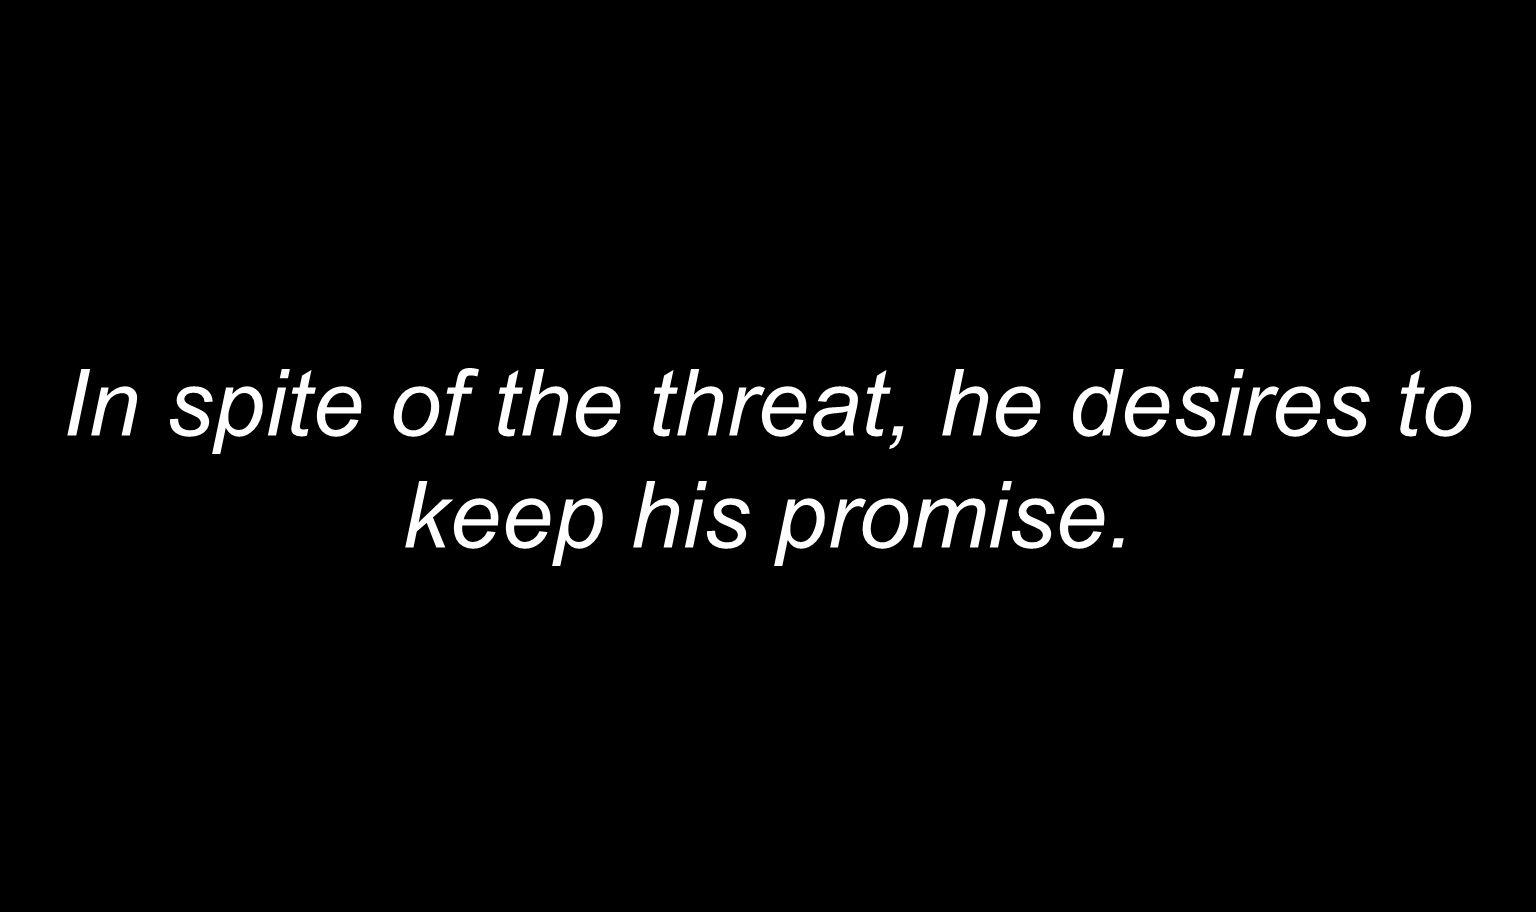 In spite of the threat, he desires to keep his promise.